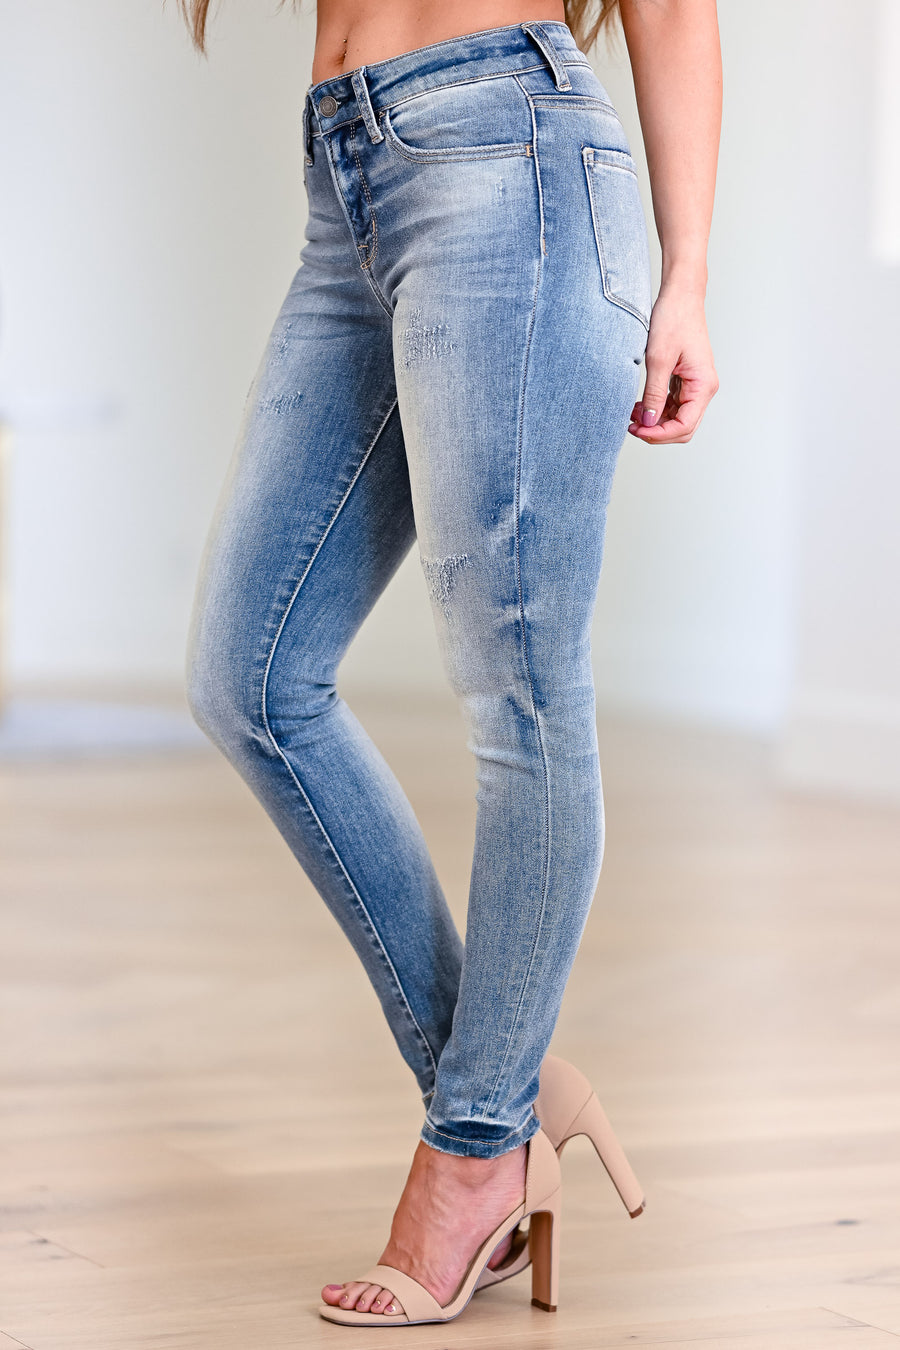 VERVET Amber Skinny Jeans - Faded Wash womens casual faded wash skinny jeans closet candy front